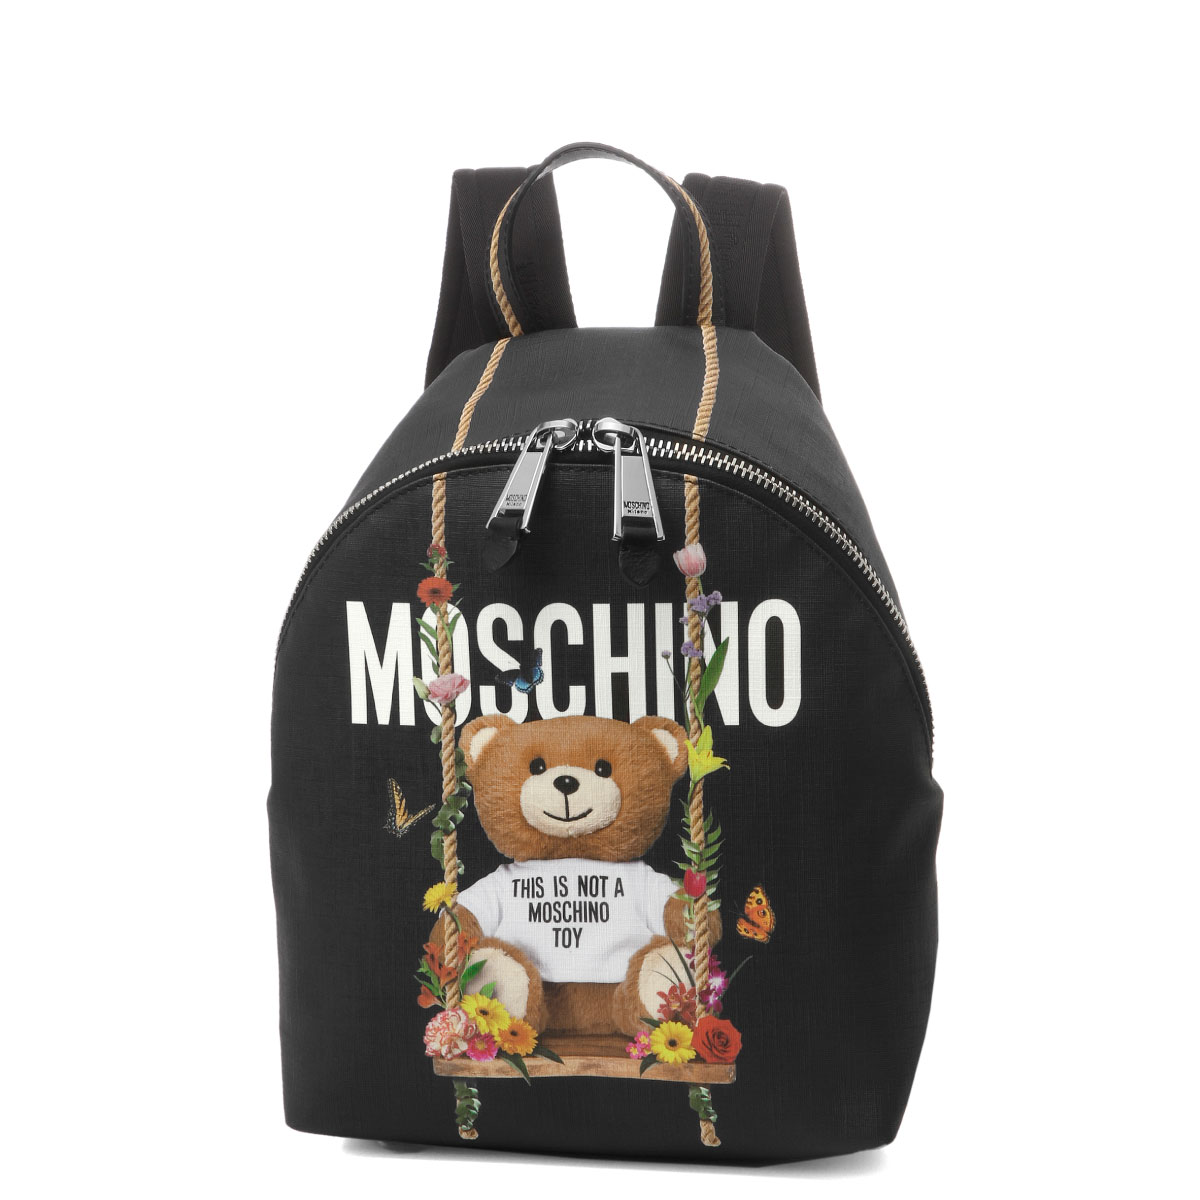 c8c865e7a3 importshopdouble: 7636 Moschino MOSCHINO bag lady 8210 2555 backpack ...